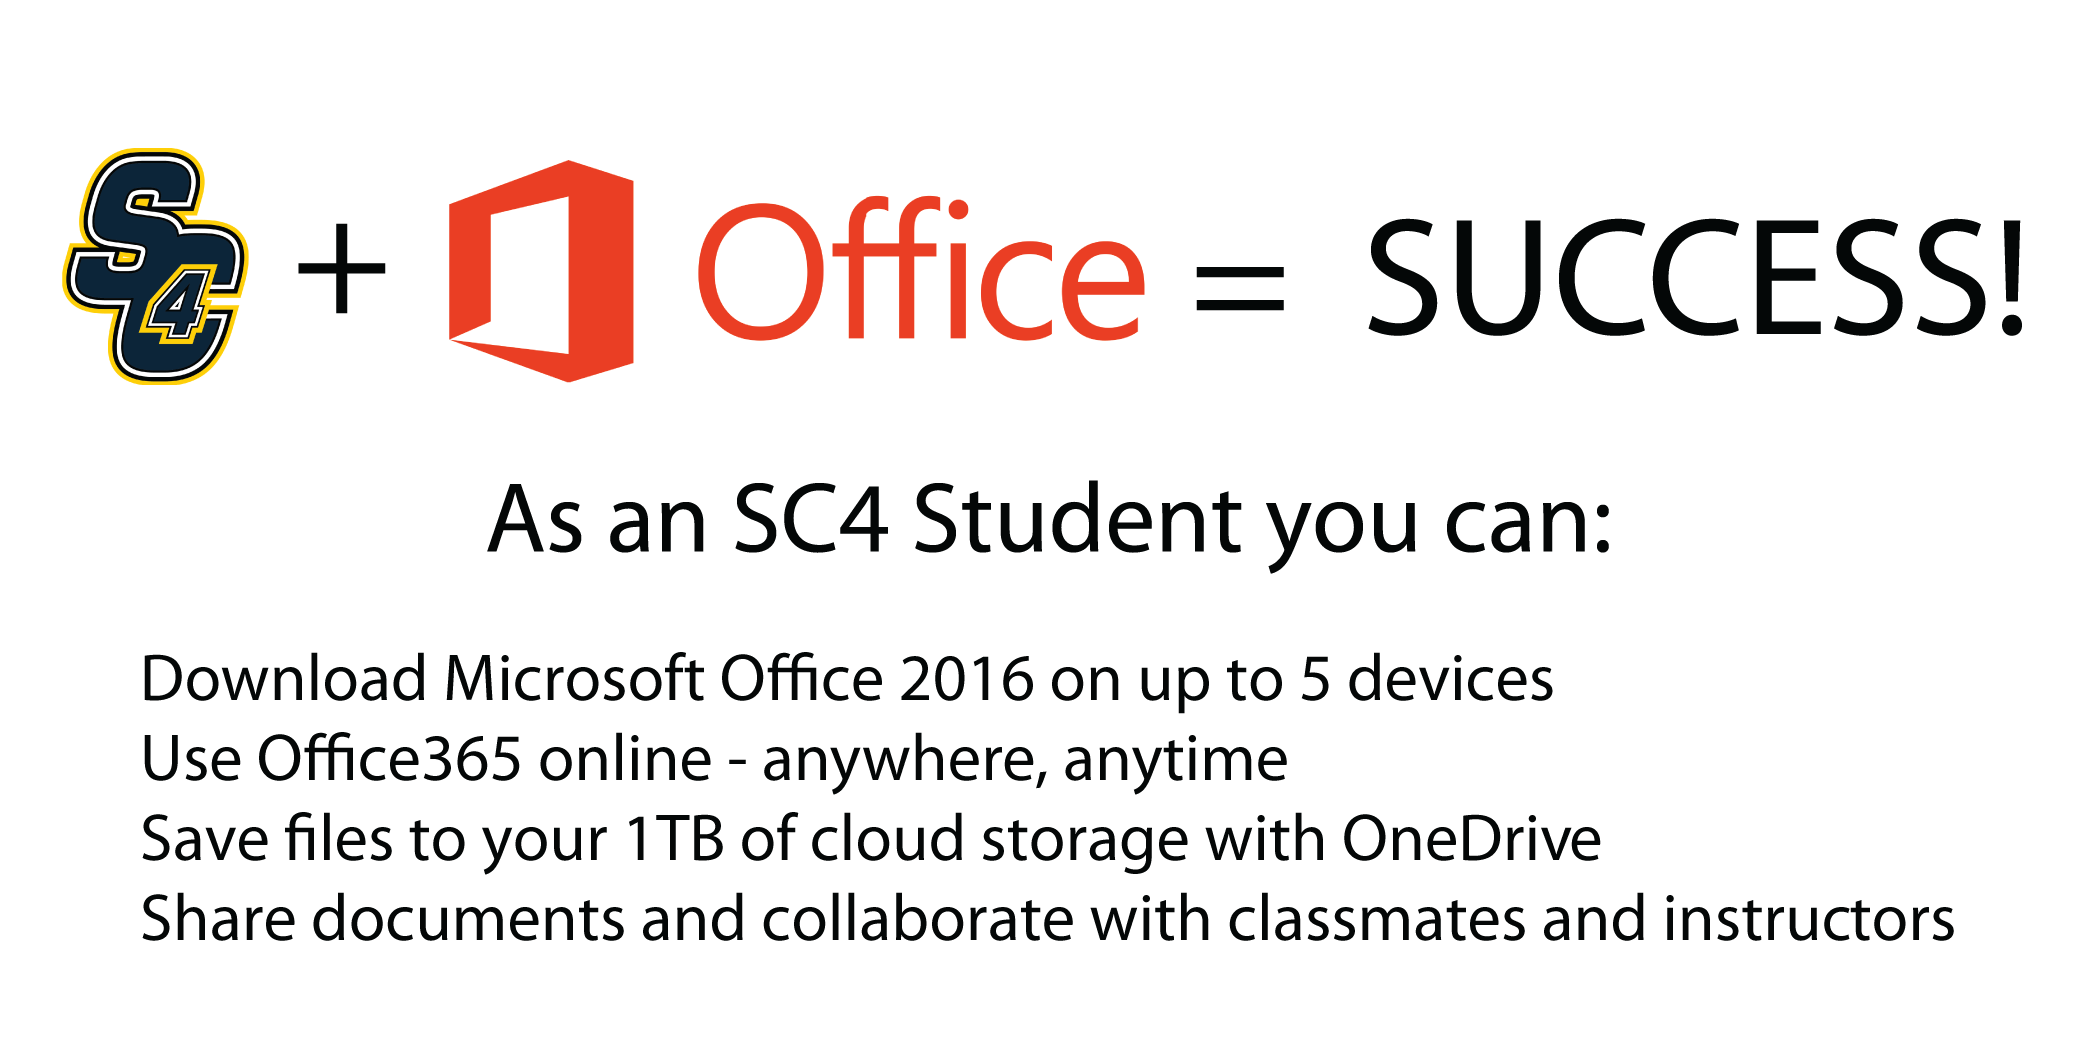 Office 365 at SC4